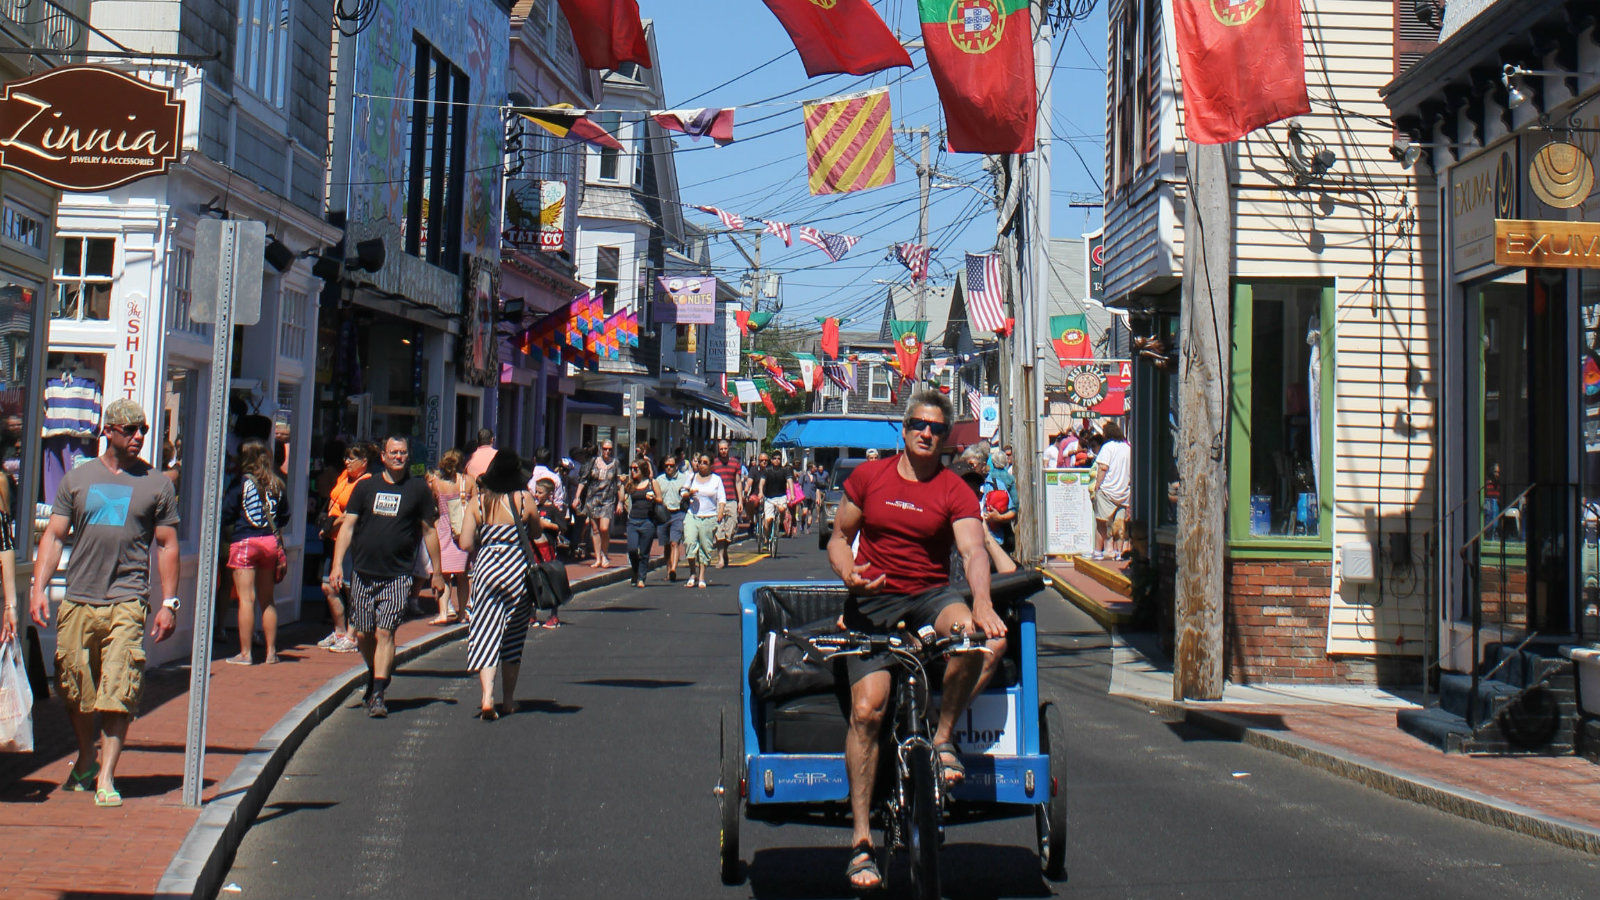 Things To Do in Provincetown - Tourism